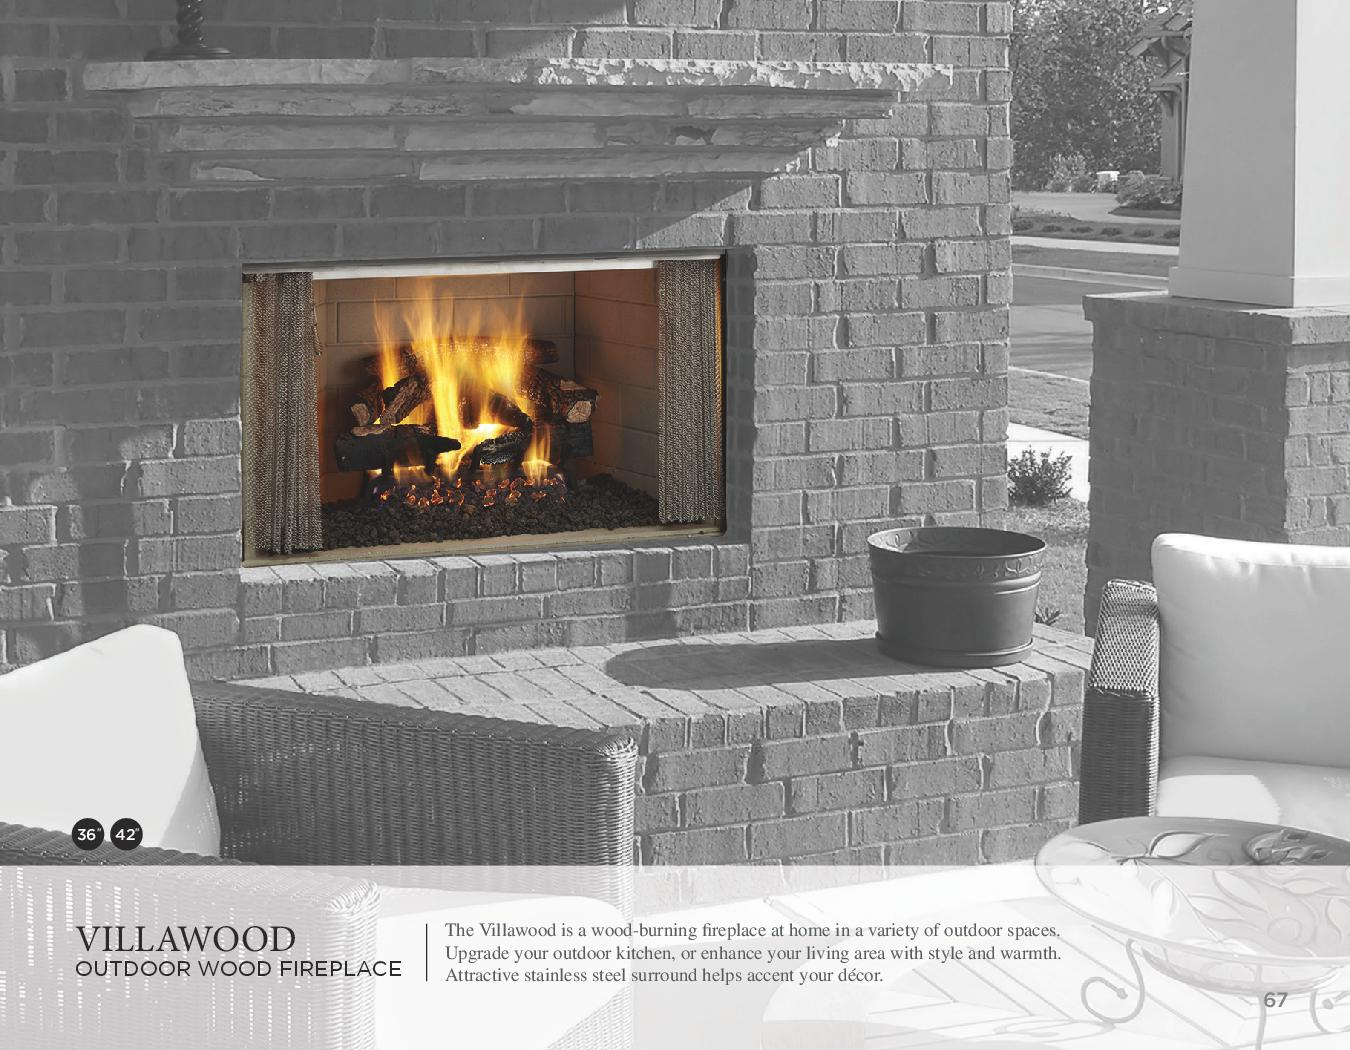 premium fireplace steel burning stainless oracle wood mosaic outdoor vantage masonry hearth